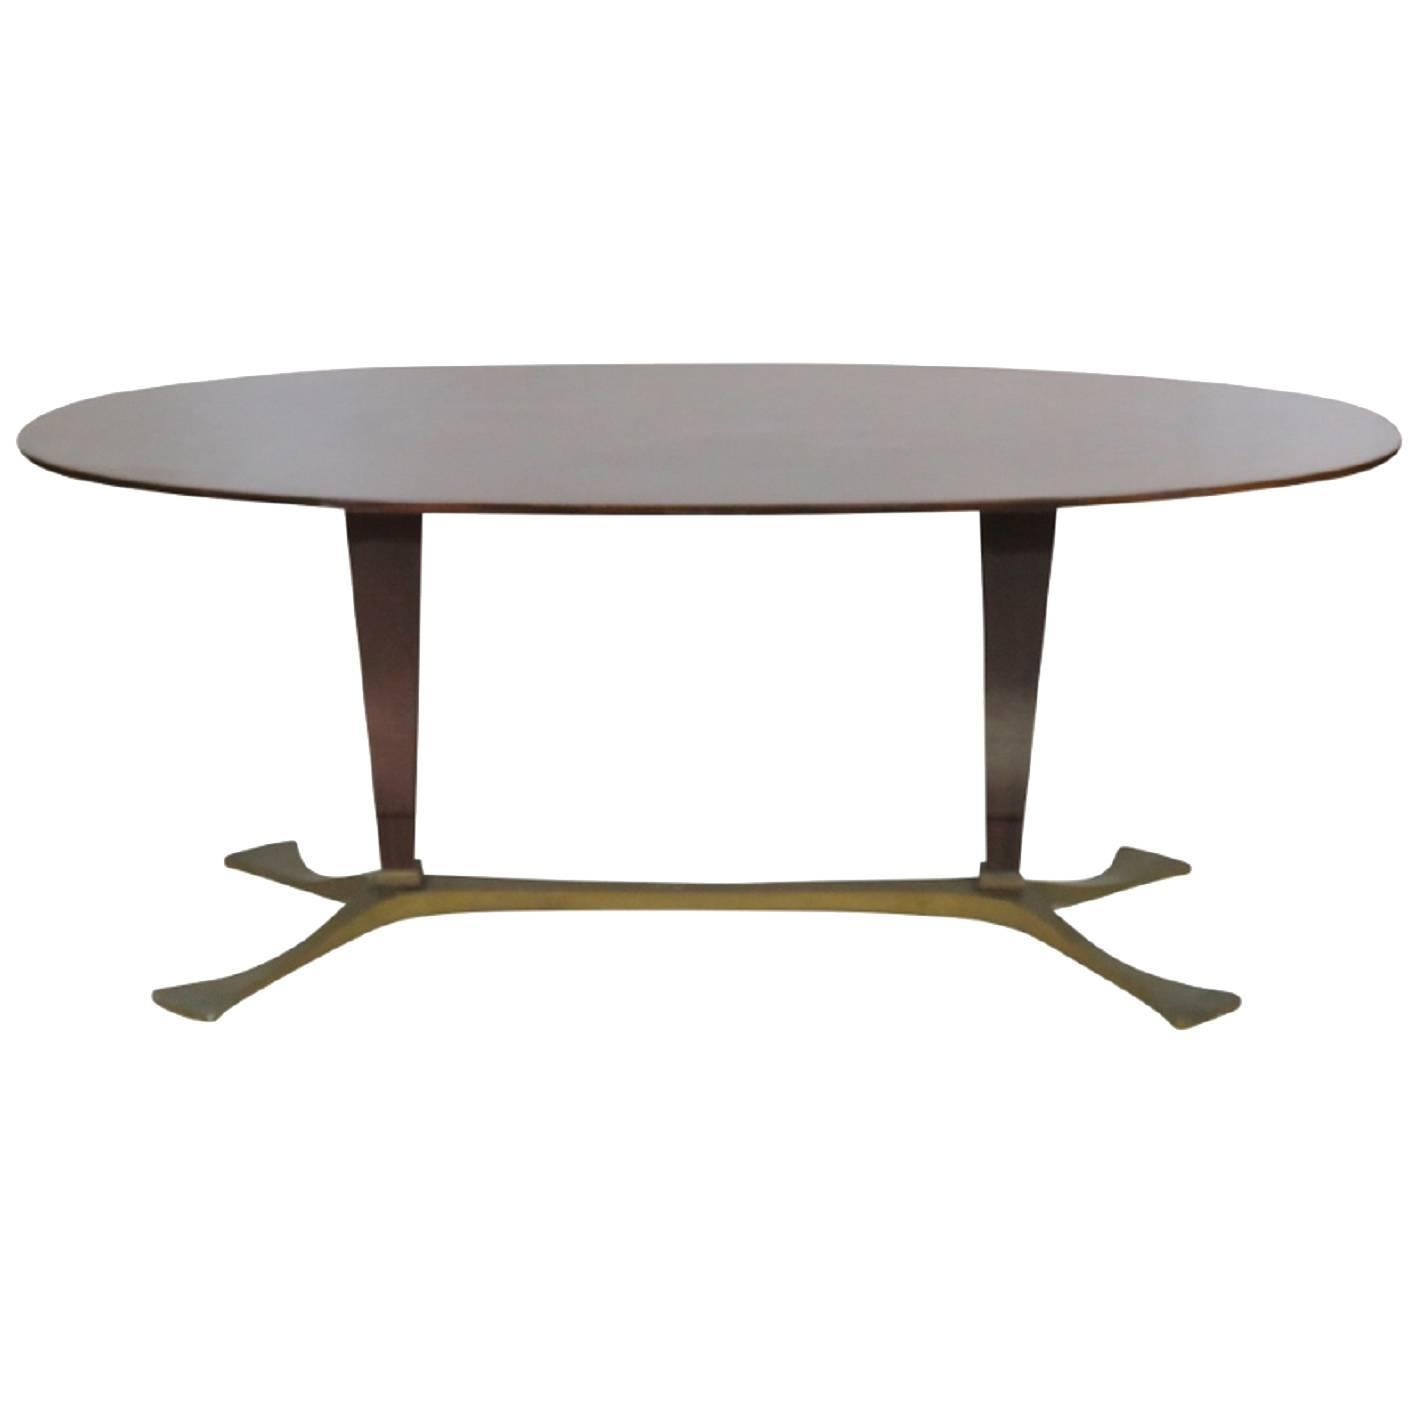 Italian modern oval mahogany dining table at 1stdibs for Italian dining table